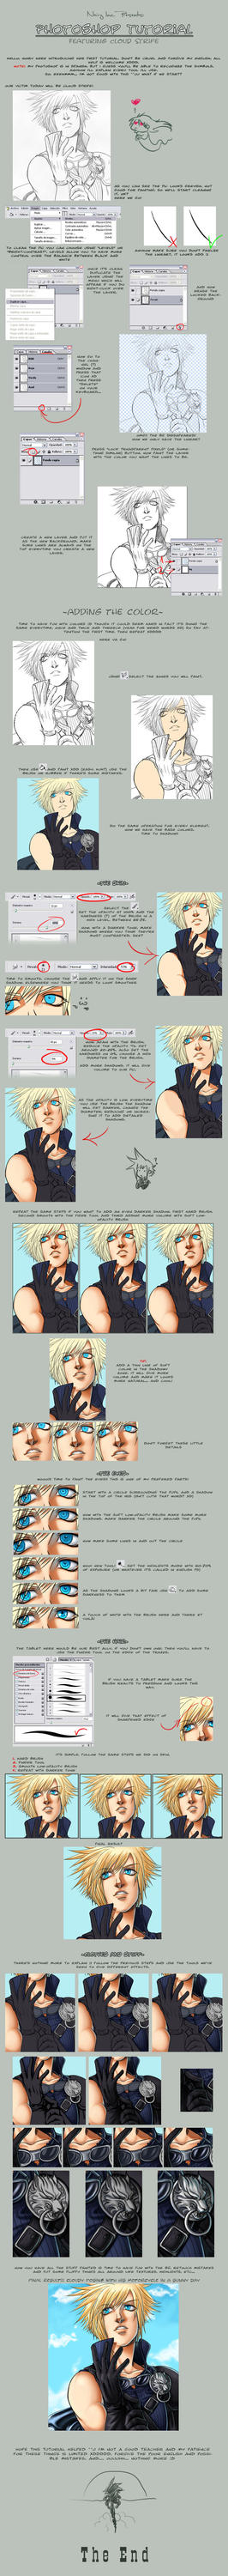 Photoshop Tutorial feat. Cloud by Noiry